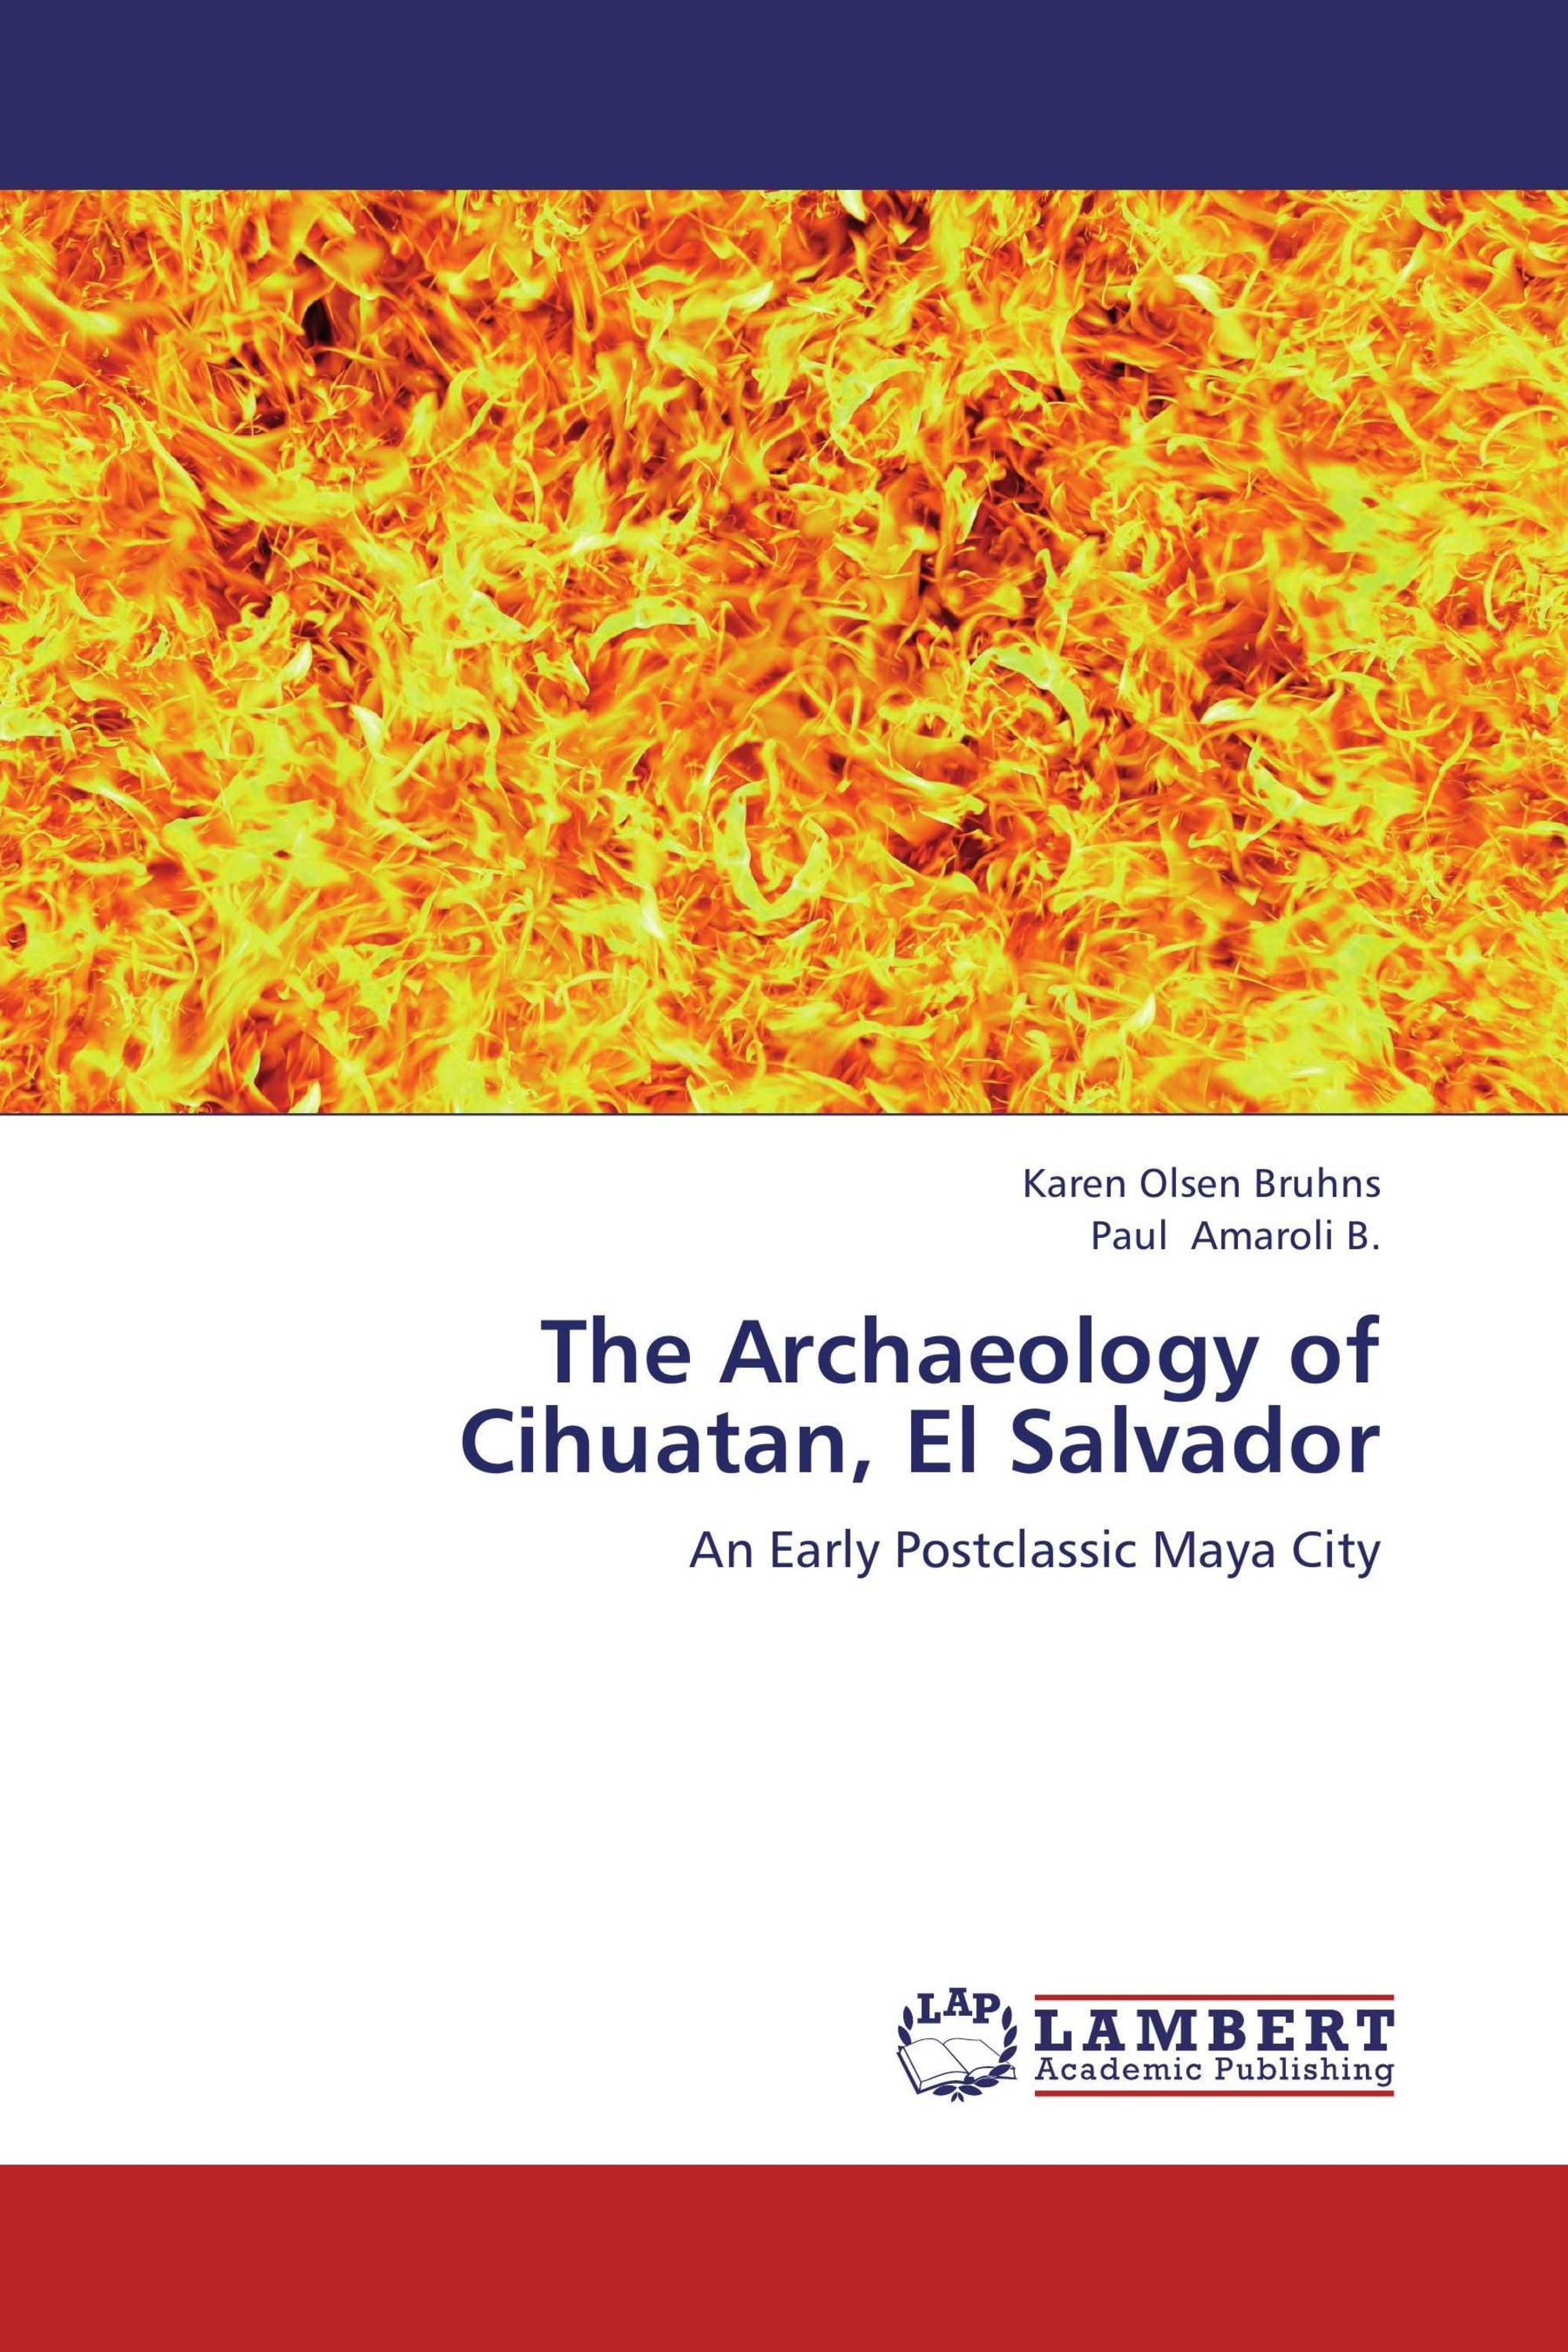 The Archaeology of Cihuatan, El Salvador